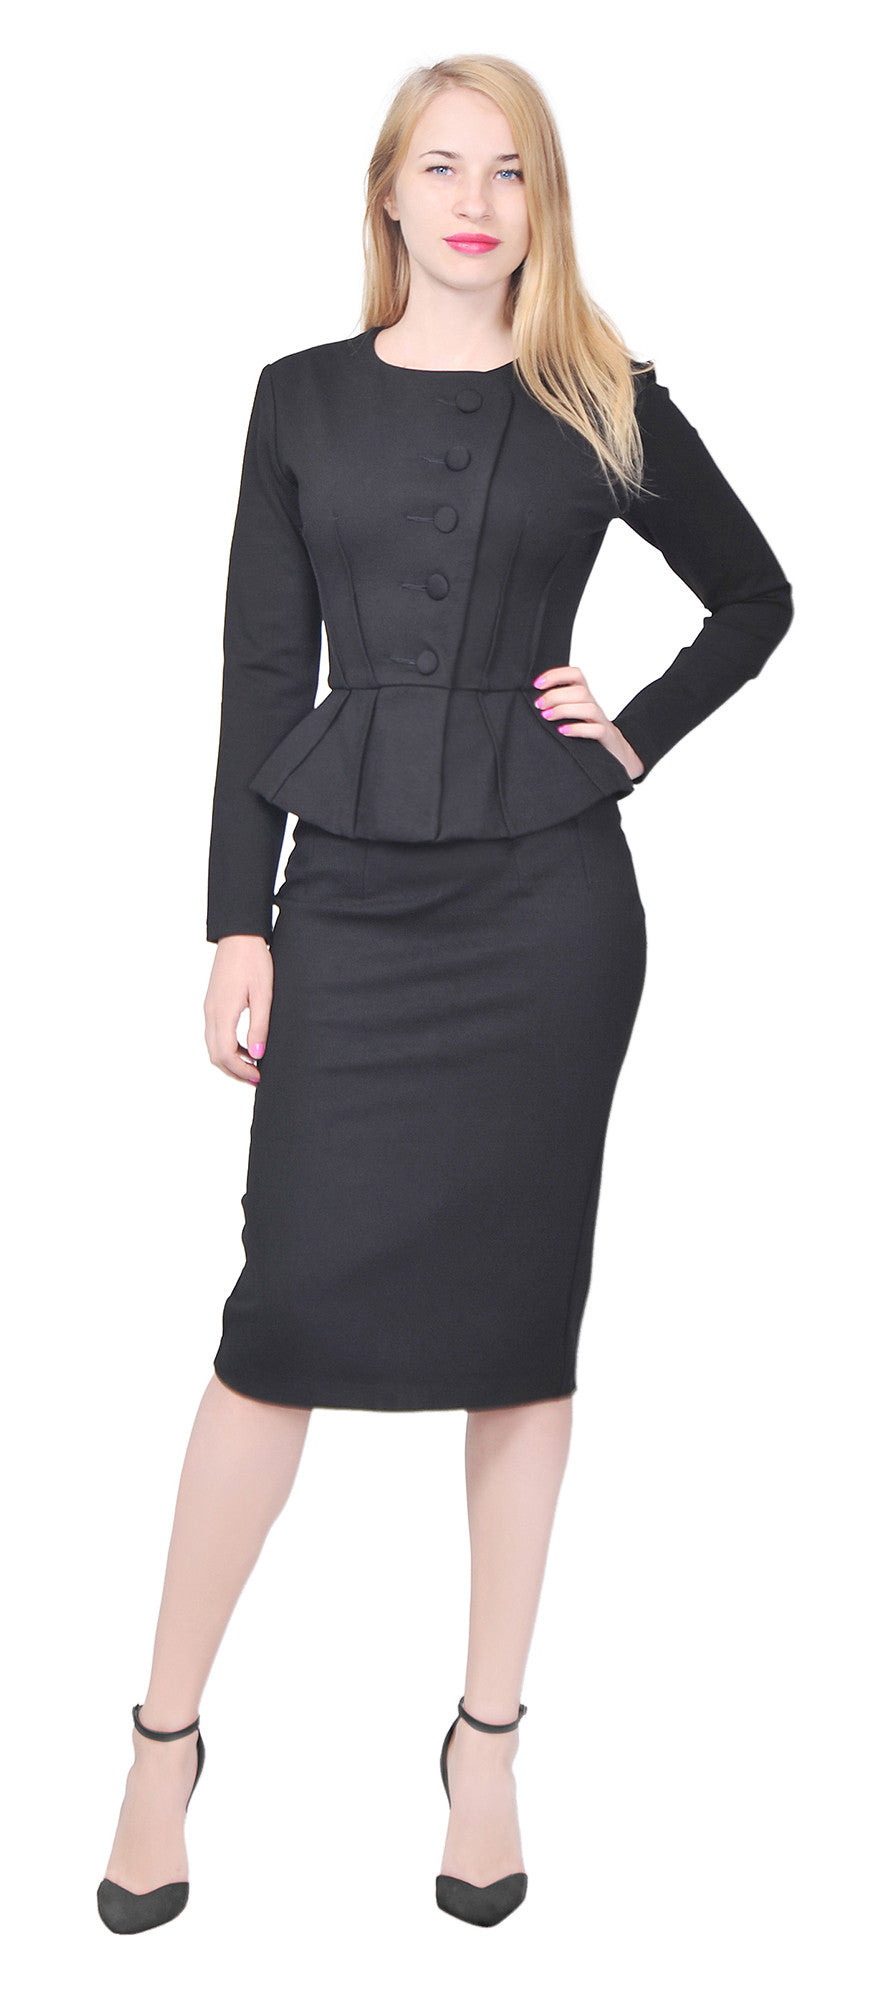 db68ecccb Women's Formal Office Business Shirt Jacket Skirt Suit Set – Marycrafts